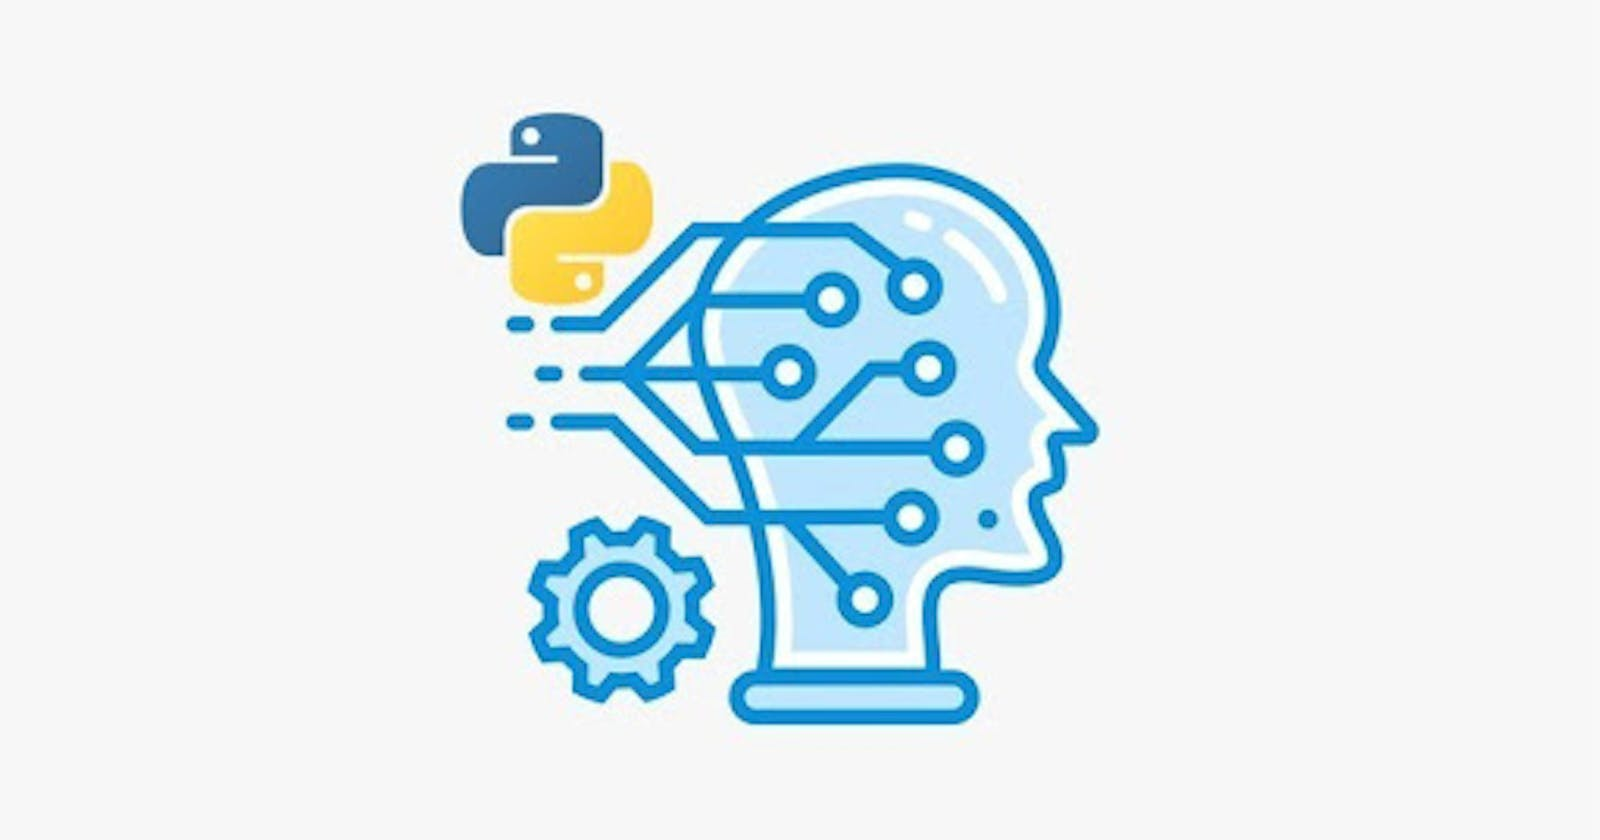 Why Python is best suited for Machine Learning